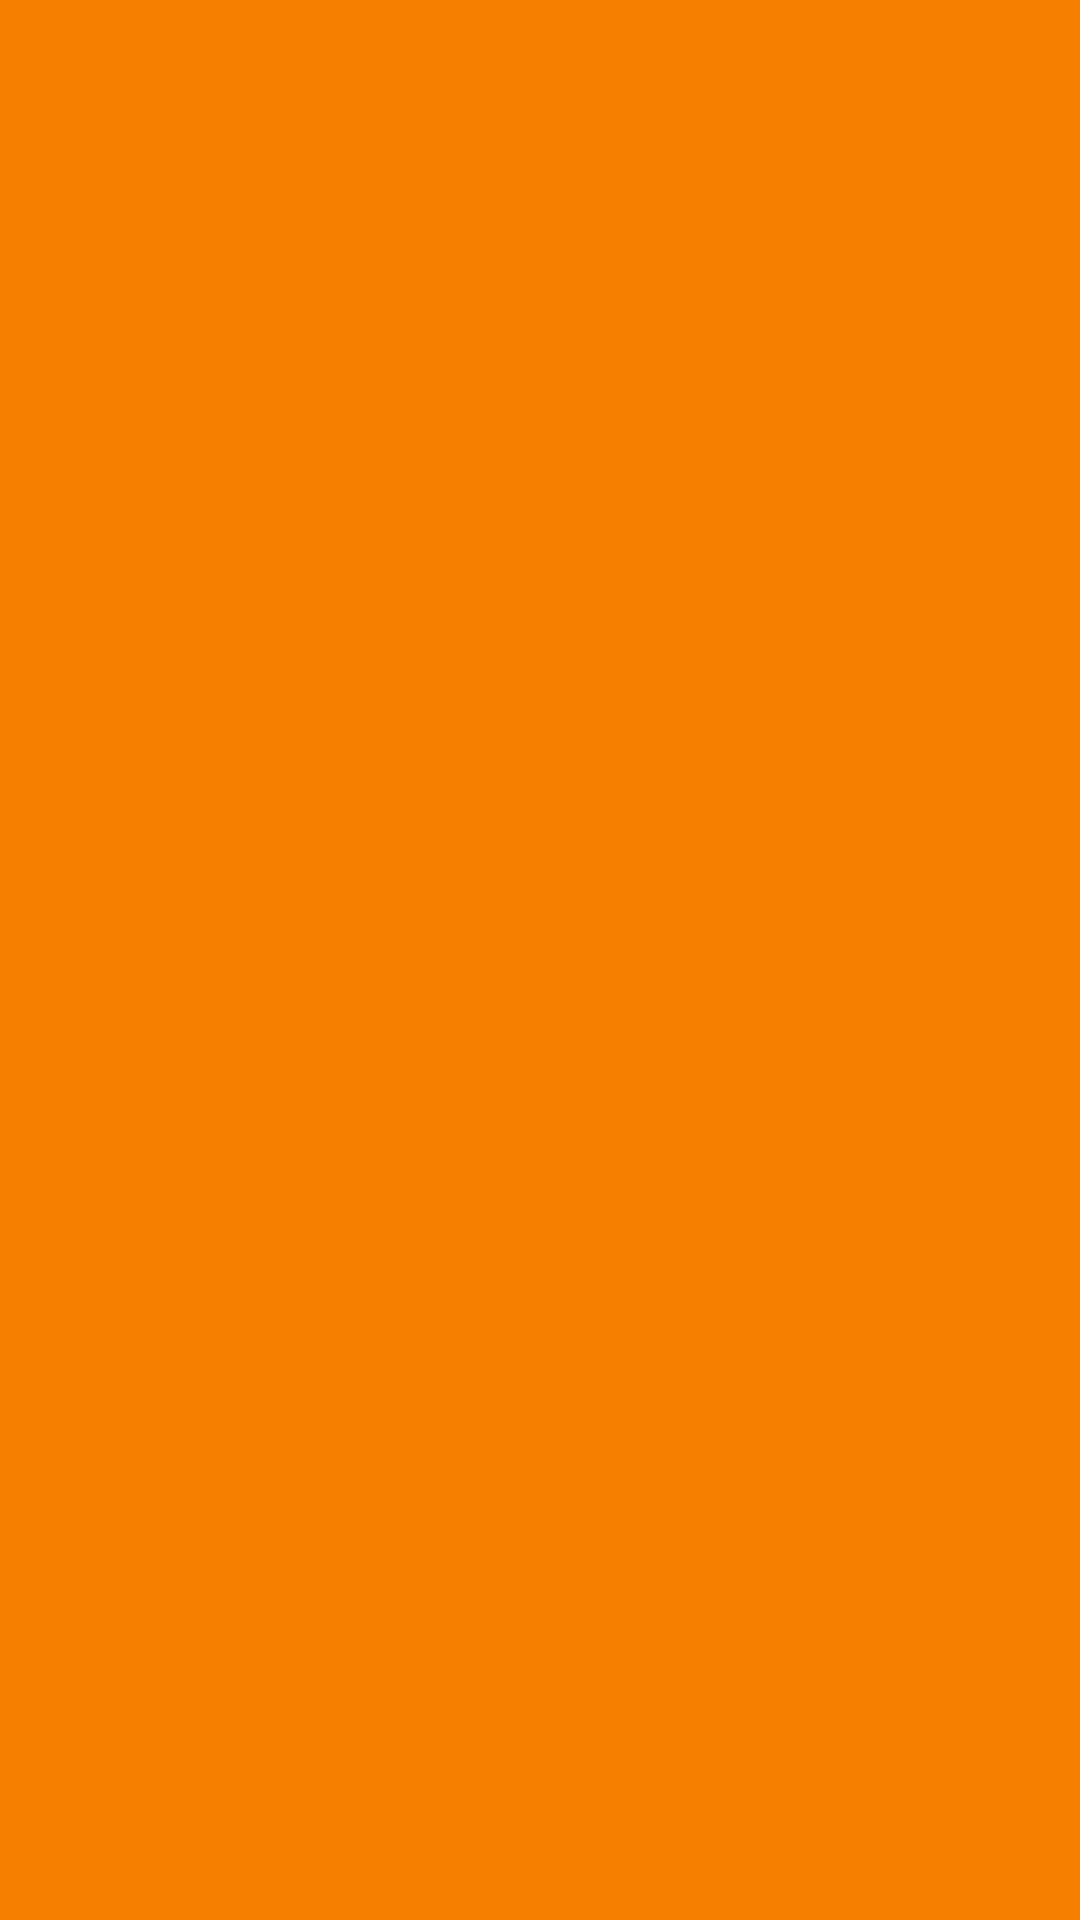 1080x1920 University Of Tennessee Orange Solid Color Background